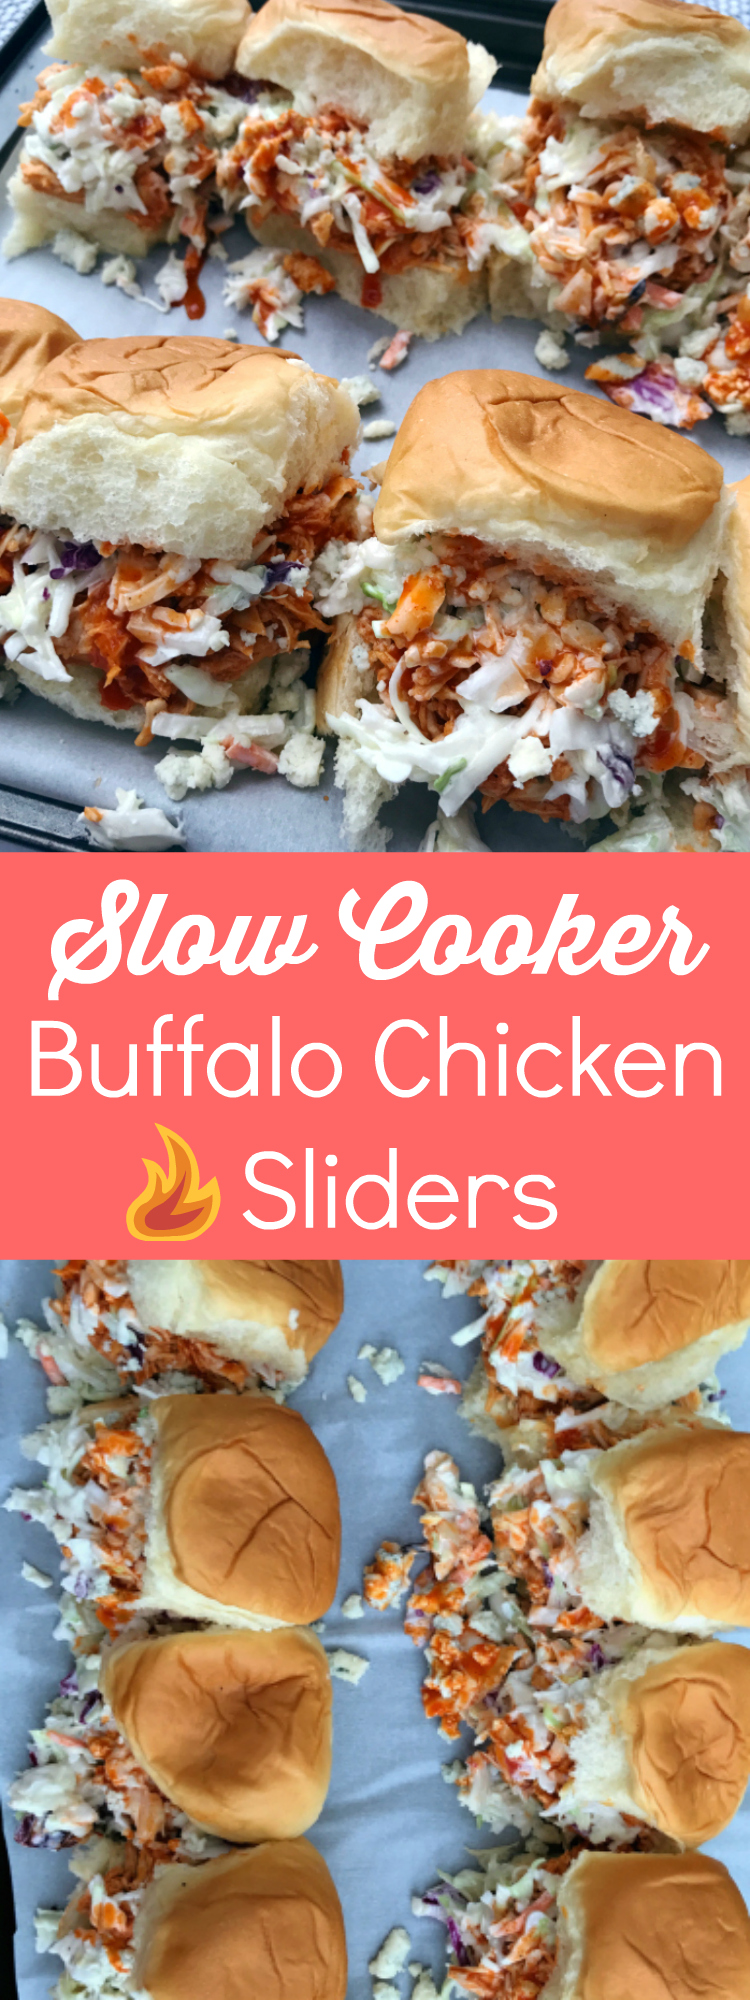 These spicy little buffalo chicken sandwiches are the perfect game-day food! Made in a crock pot, these sandwiches are easy to make and even easier to transport to a football tailgate.